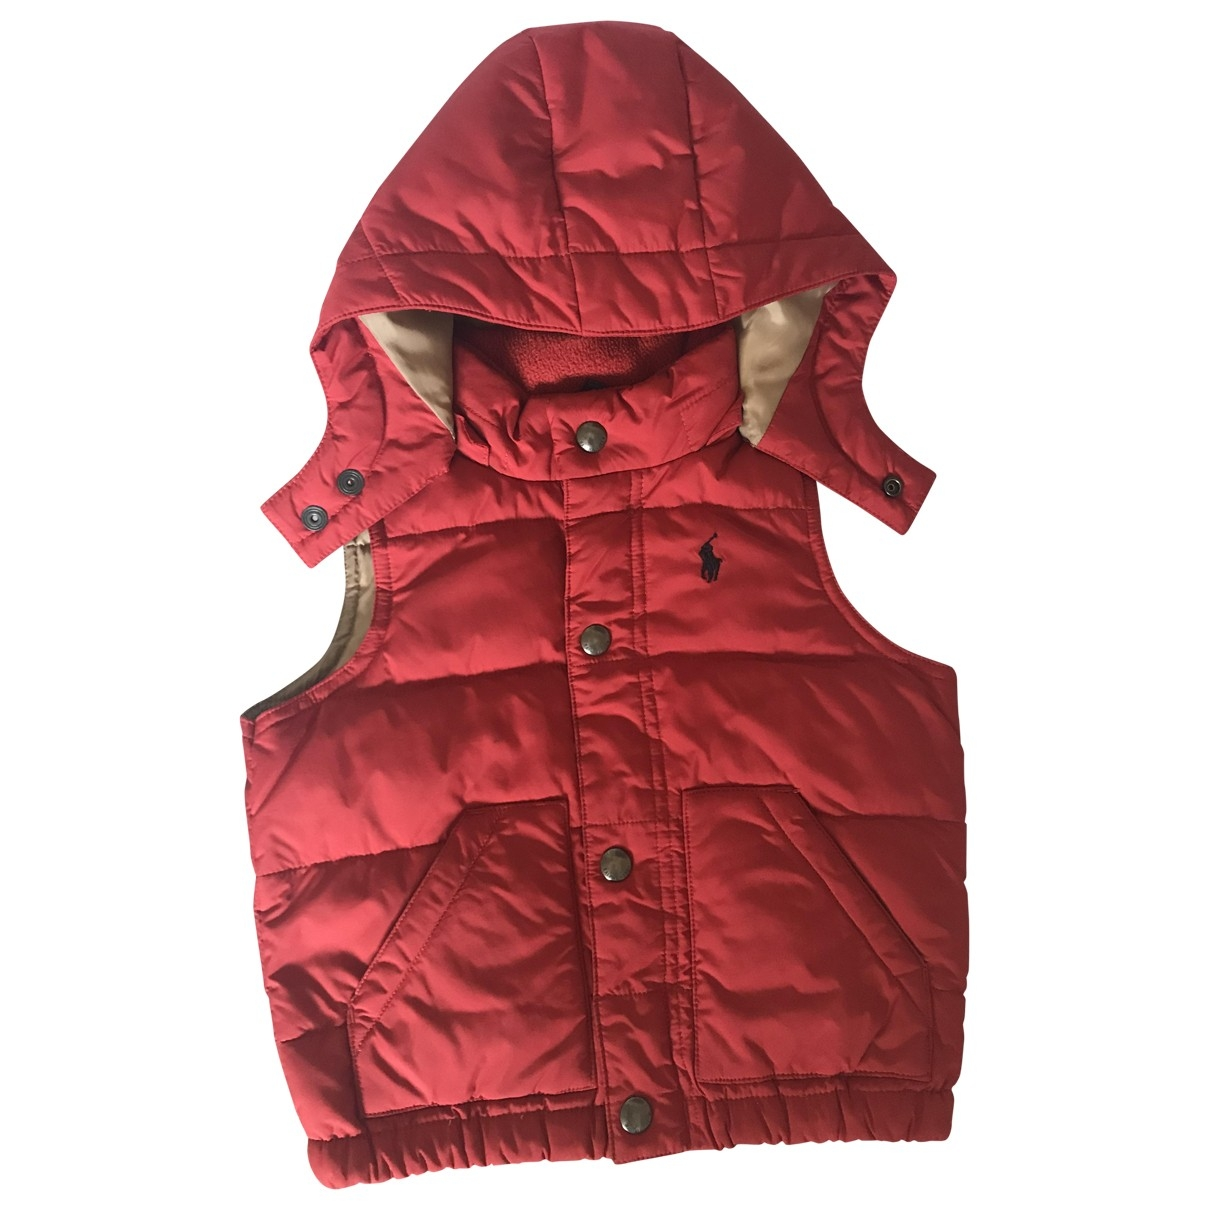 Polo Ralph Lauren \N Red jacket & coat for Kids 12 months - up to 74cm FR